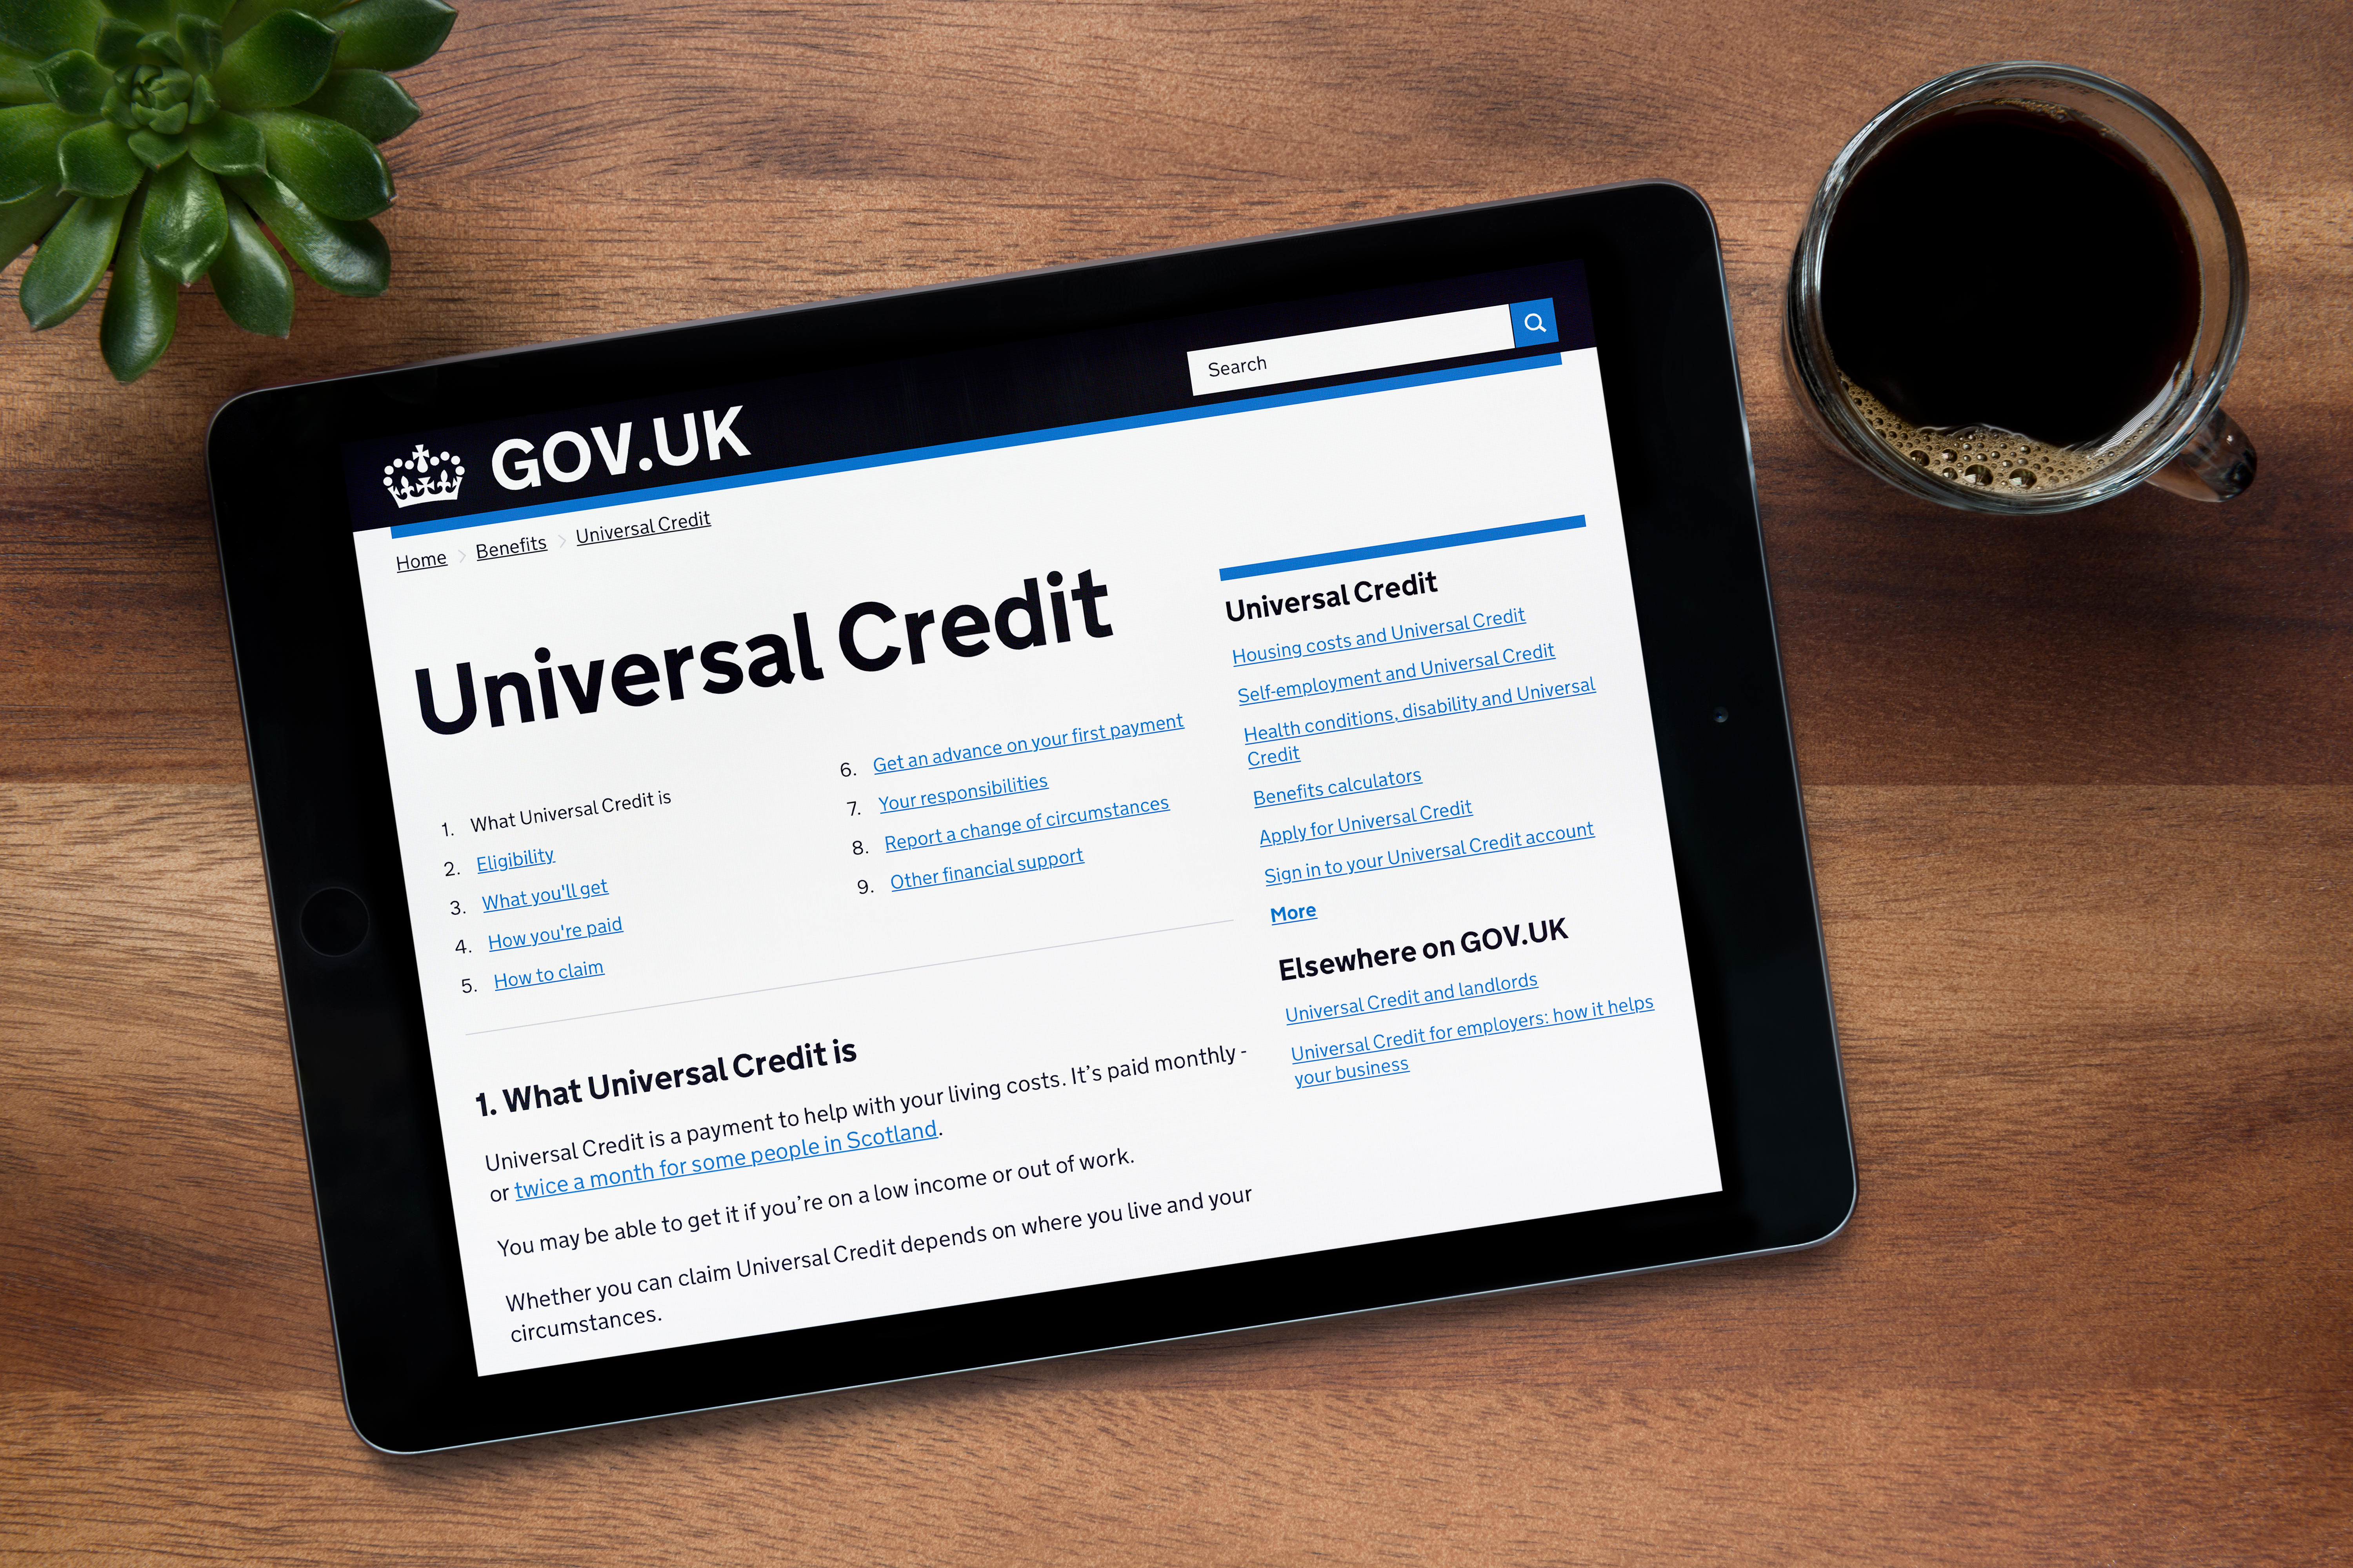 Universal Credit claimants can get a budgeting advance of up to £812 to help them get by